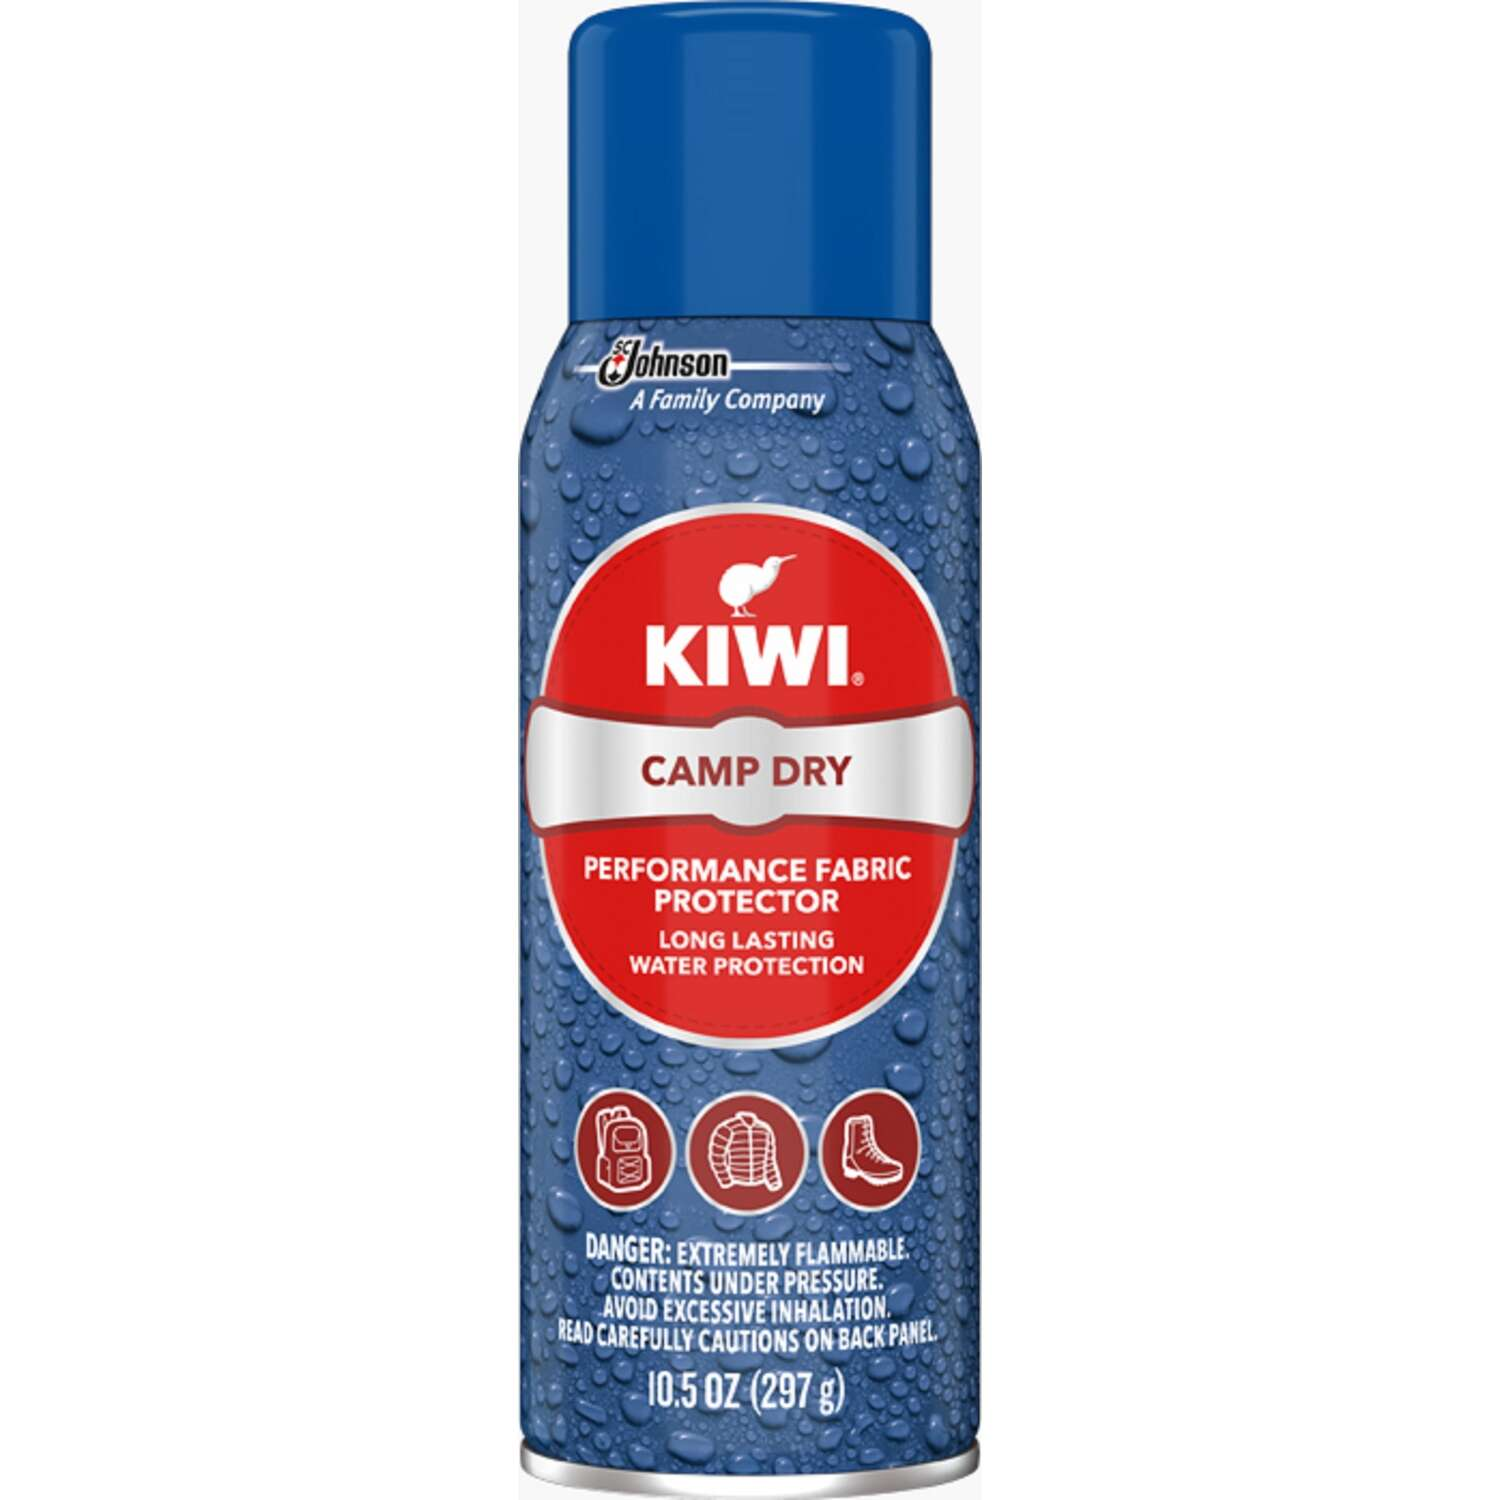 Kiwi  Camp Dry  Clear  Camp Dry Fabric Protector  10.5 oz.